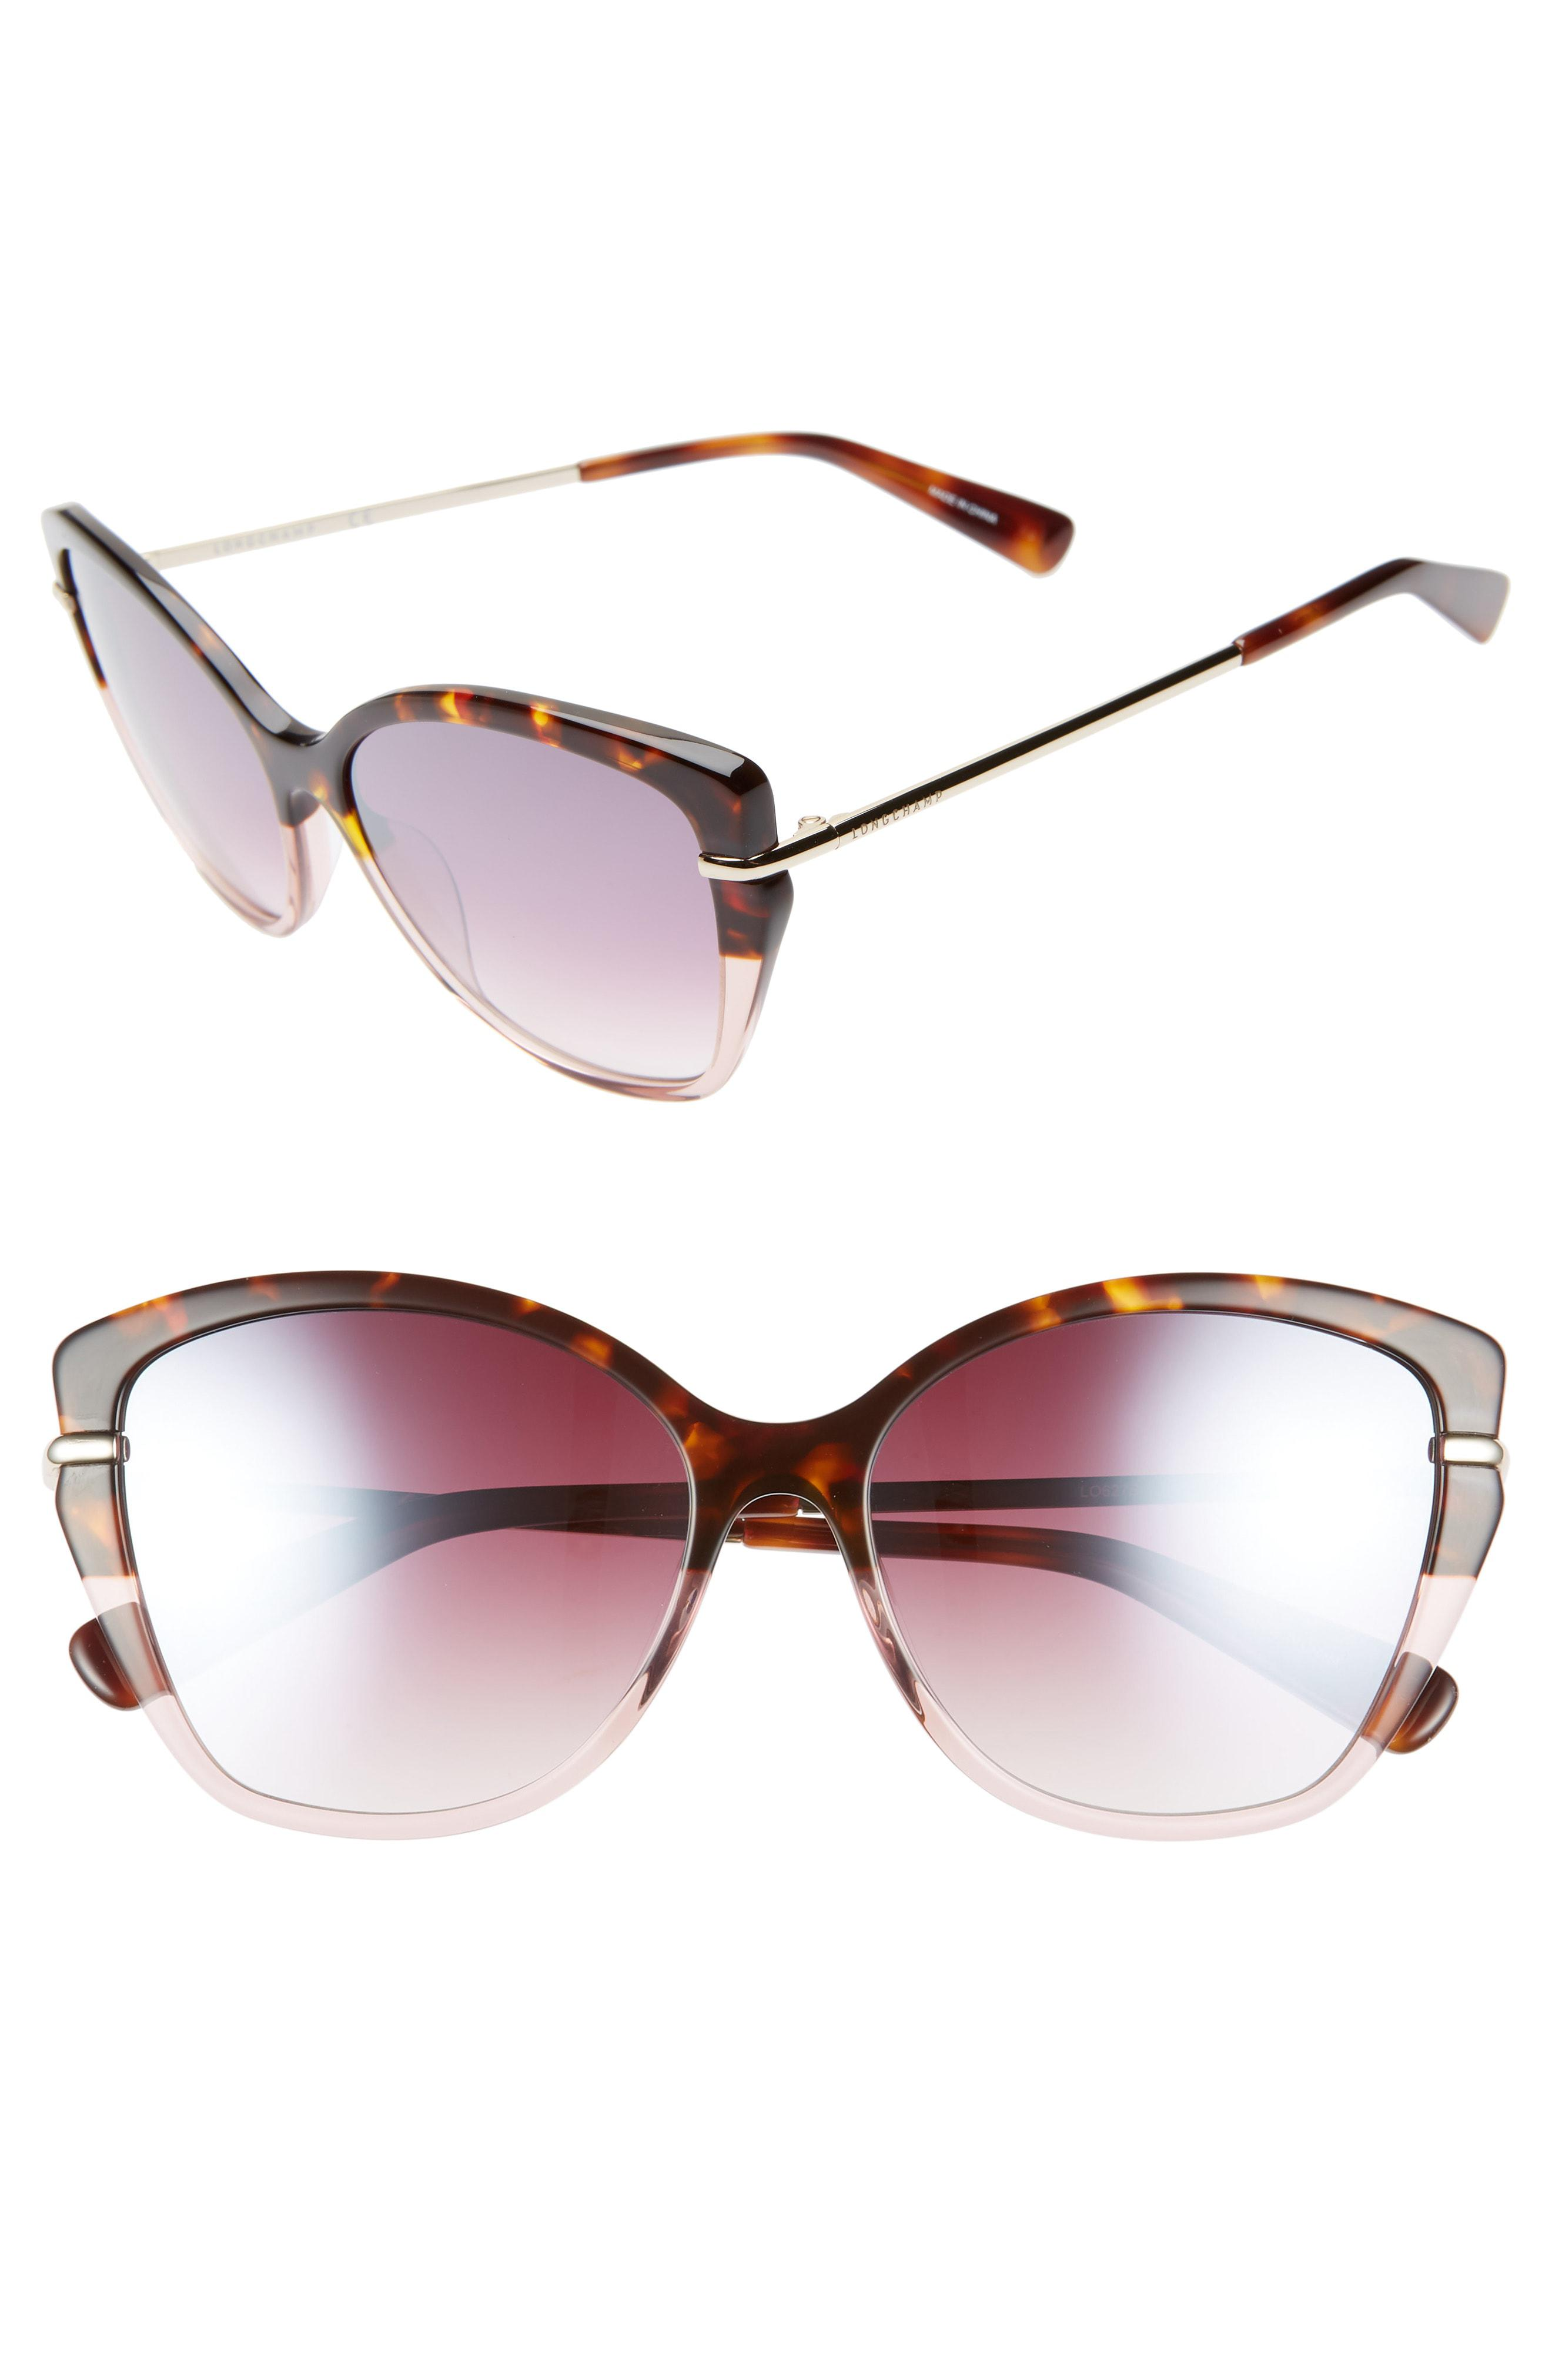 85156e2ba6 Lyst - Longchamp Heritage 57mm Butterfly Sunglasses in Pink